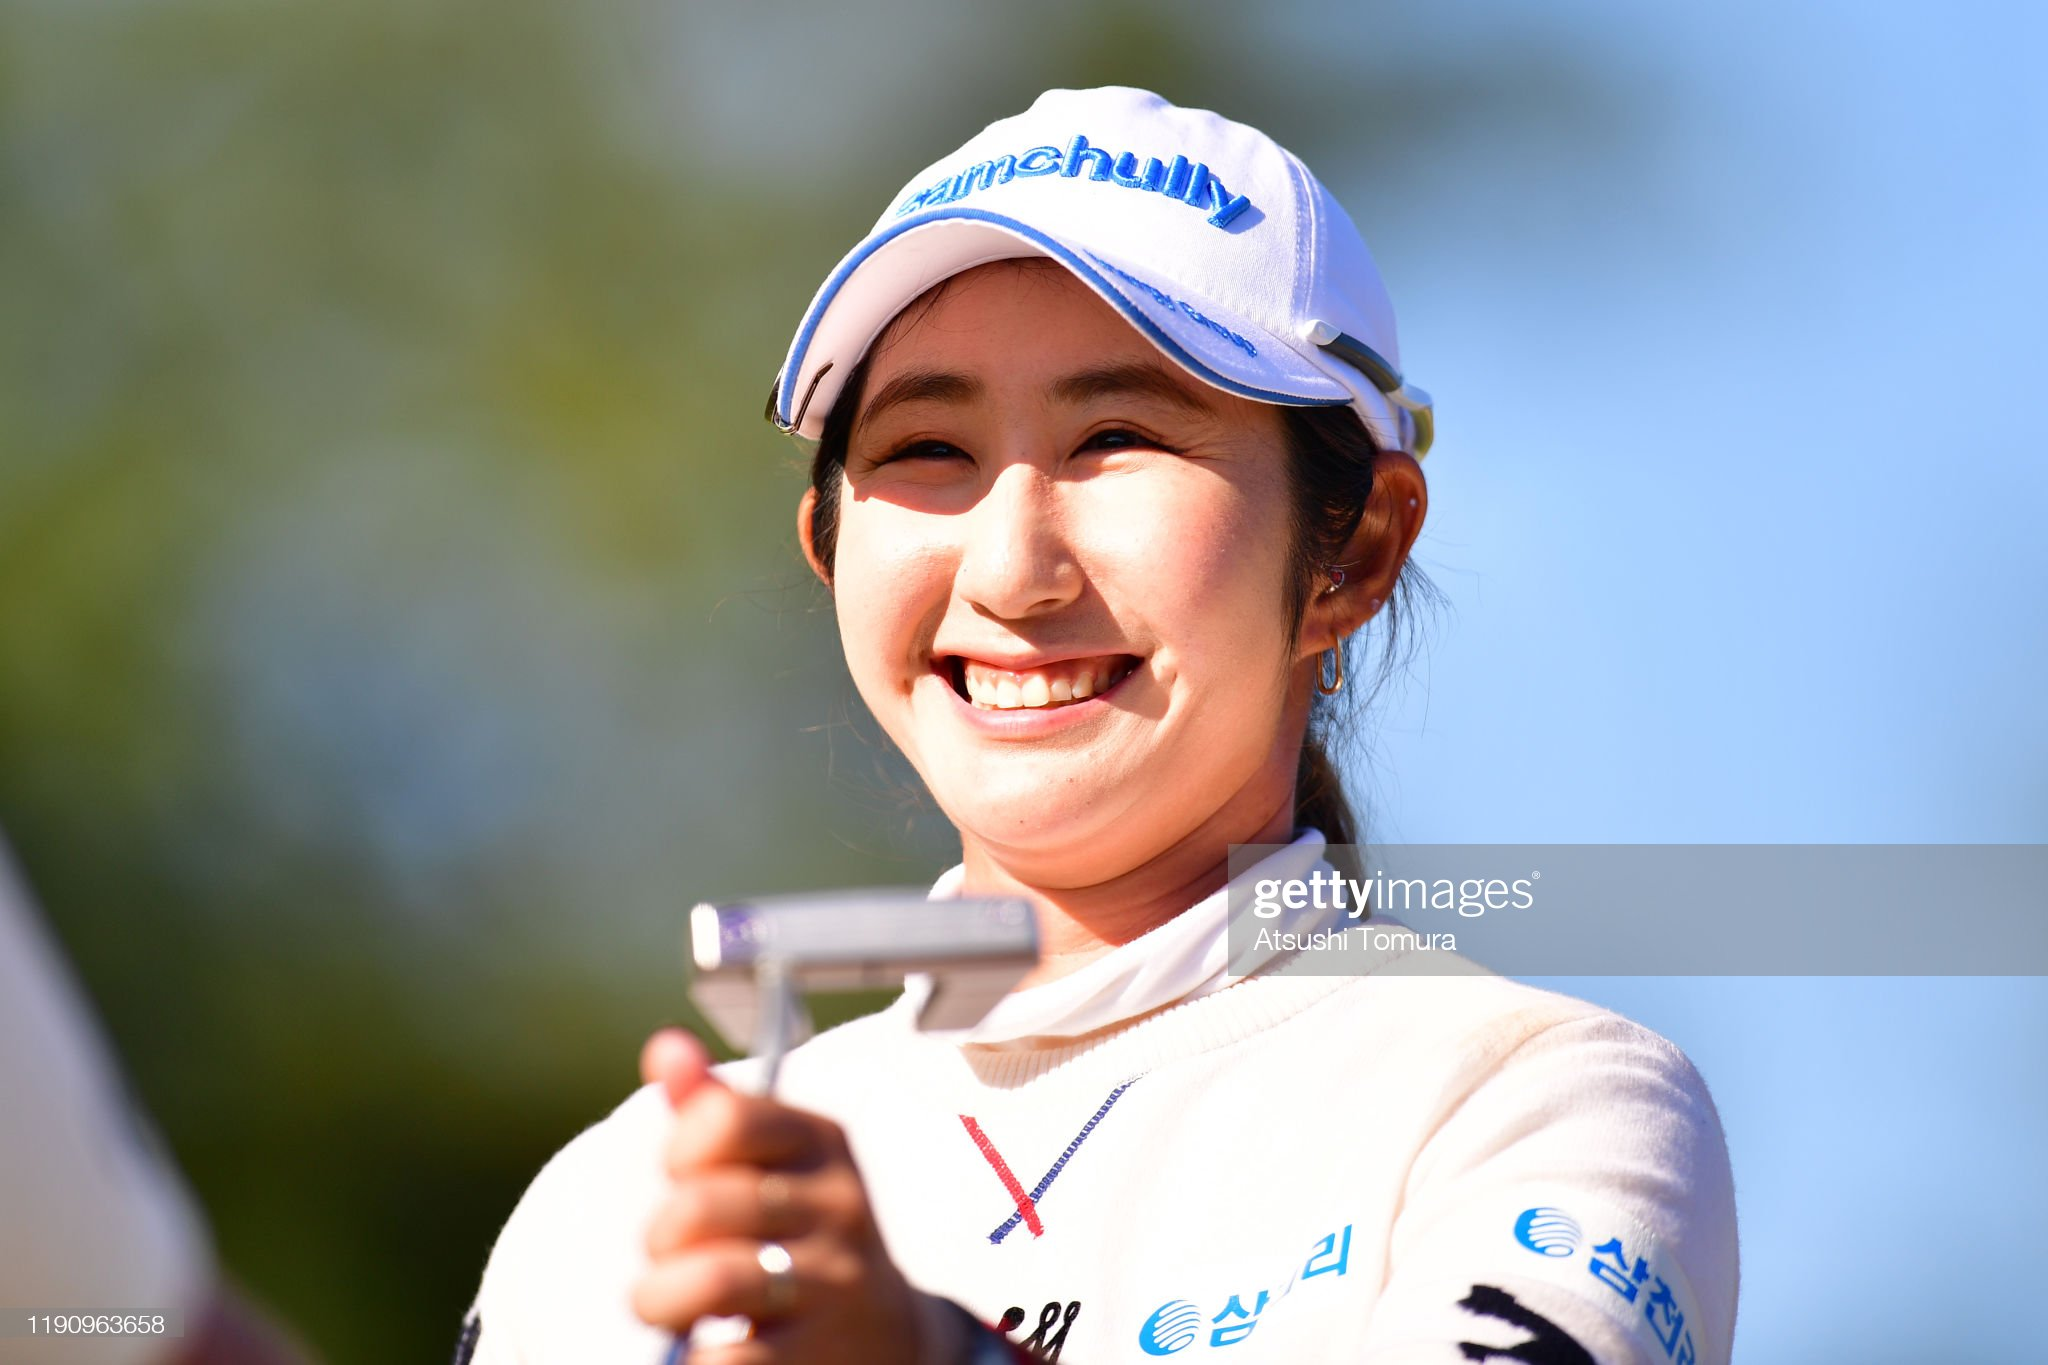 https://media.gettyimages.com/photos/seonwoo-bae-of-south-korea-smiles-on-the-15th-green-during-the-third-picture-id1190963658?s=2048x2048